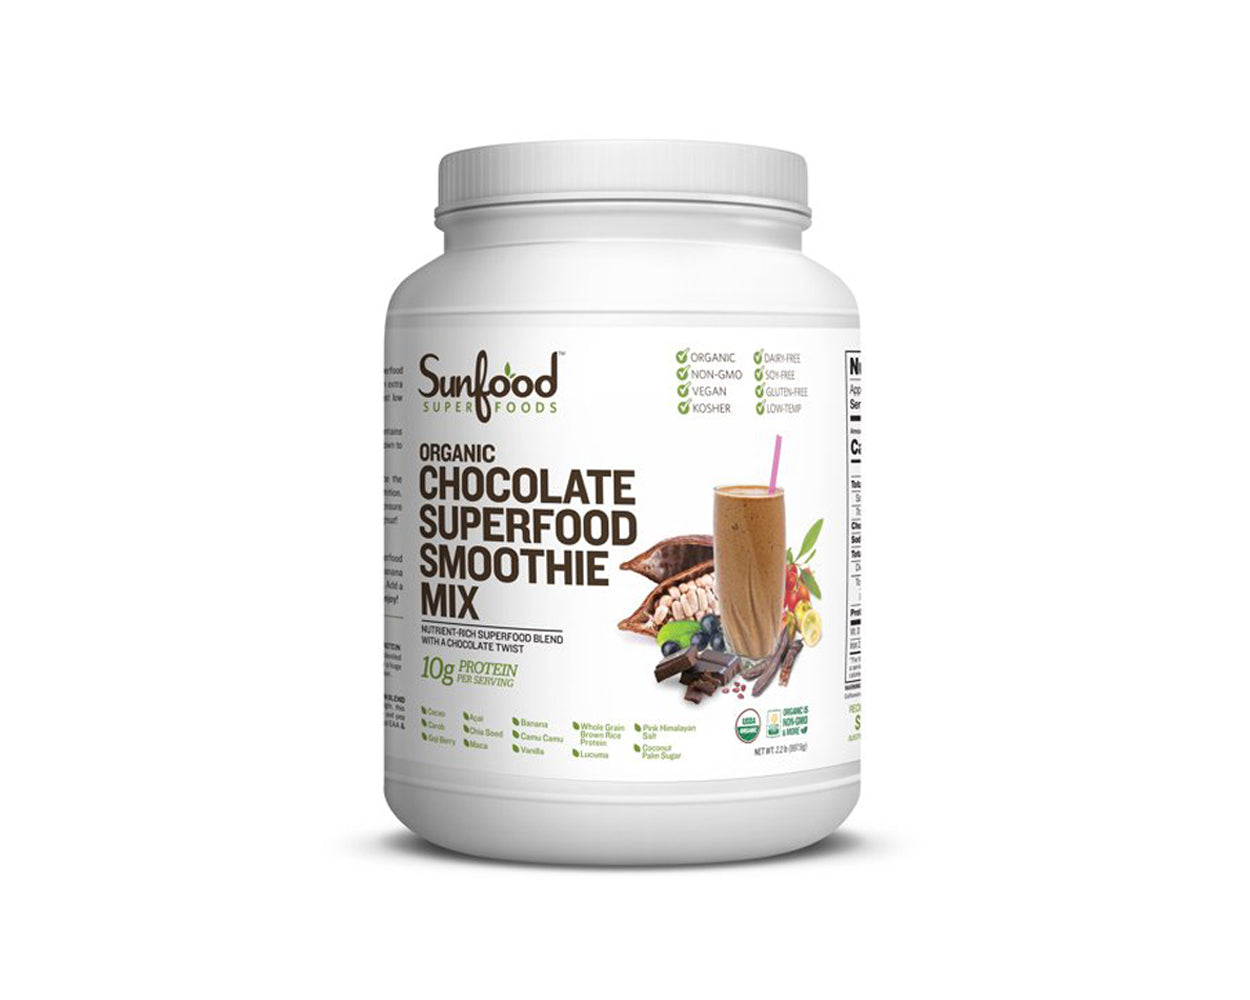 Chocolate Superfood Smoothie Mix, 2.2lb Tub, Organic